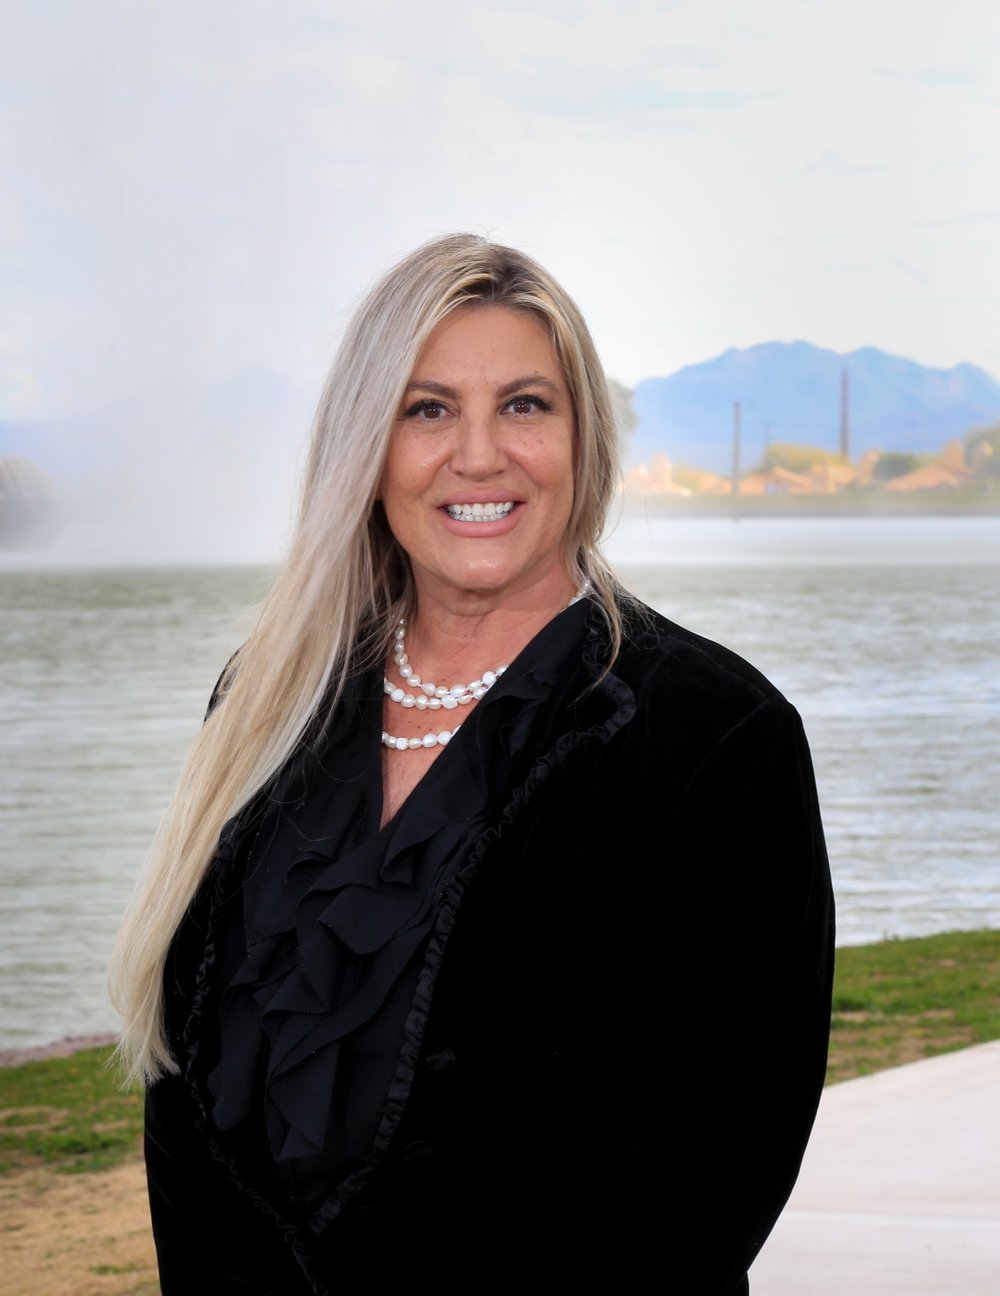 Annette MaryDirector of Outreach - As the Community Outreach Director for Fountain Hills Recovery, Annette is responsible for building and maintaining strategic alliances within the community and beyond. Annette also serves as the liaison for Fountain Hills Recovery, at both public and private events.